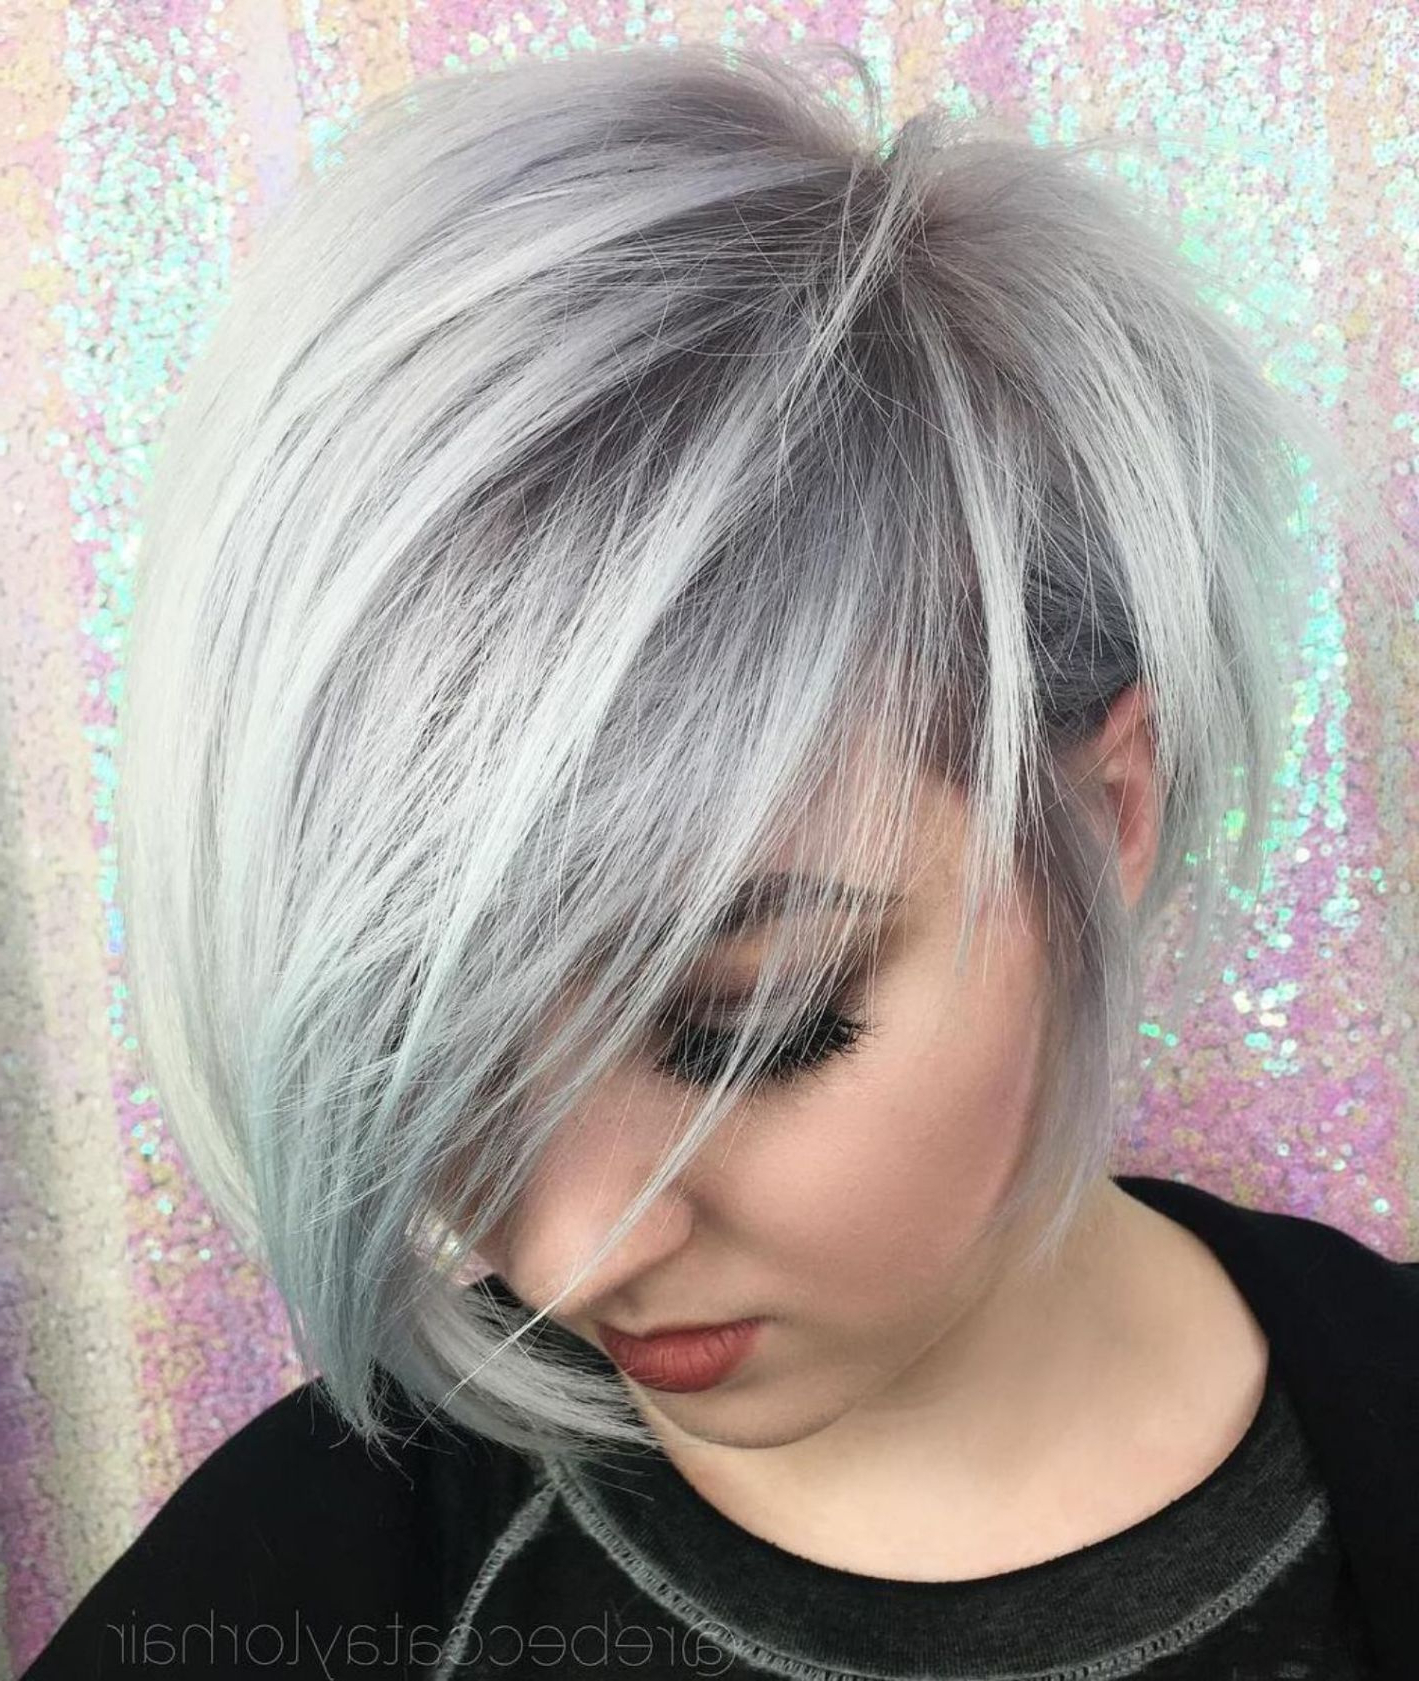 Hairstyles : Asymmetrical Haircuts For Round Faces Pertaining To Asymmetrical Shaggy Pixie Hairstyles (View 14 of 20)